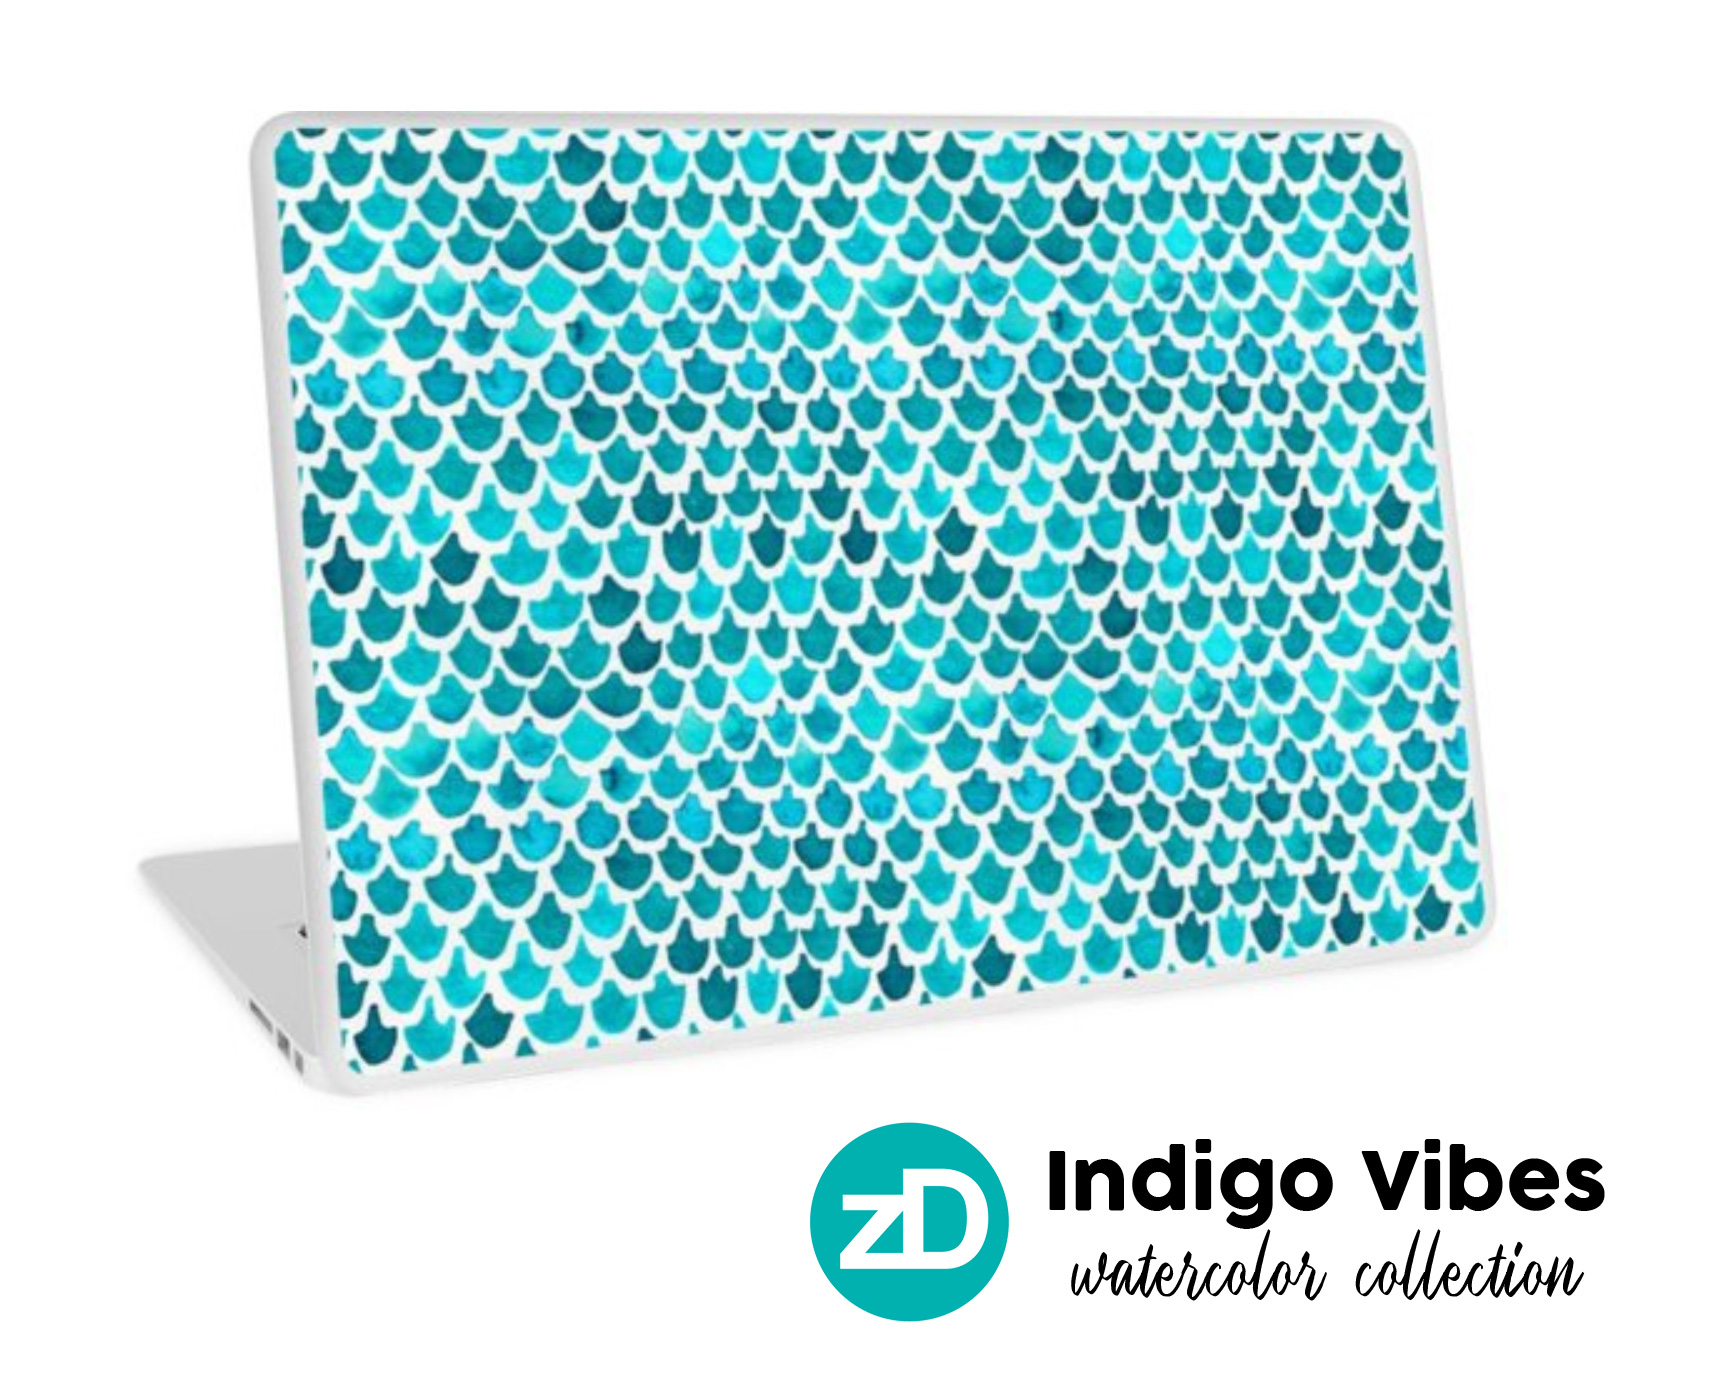 Zirkus Design | Indigo Vibes Summer Watercolor Surface Pattern Design Collection : Laptop Sticker Mockup